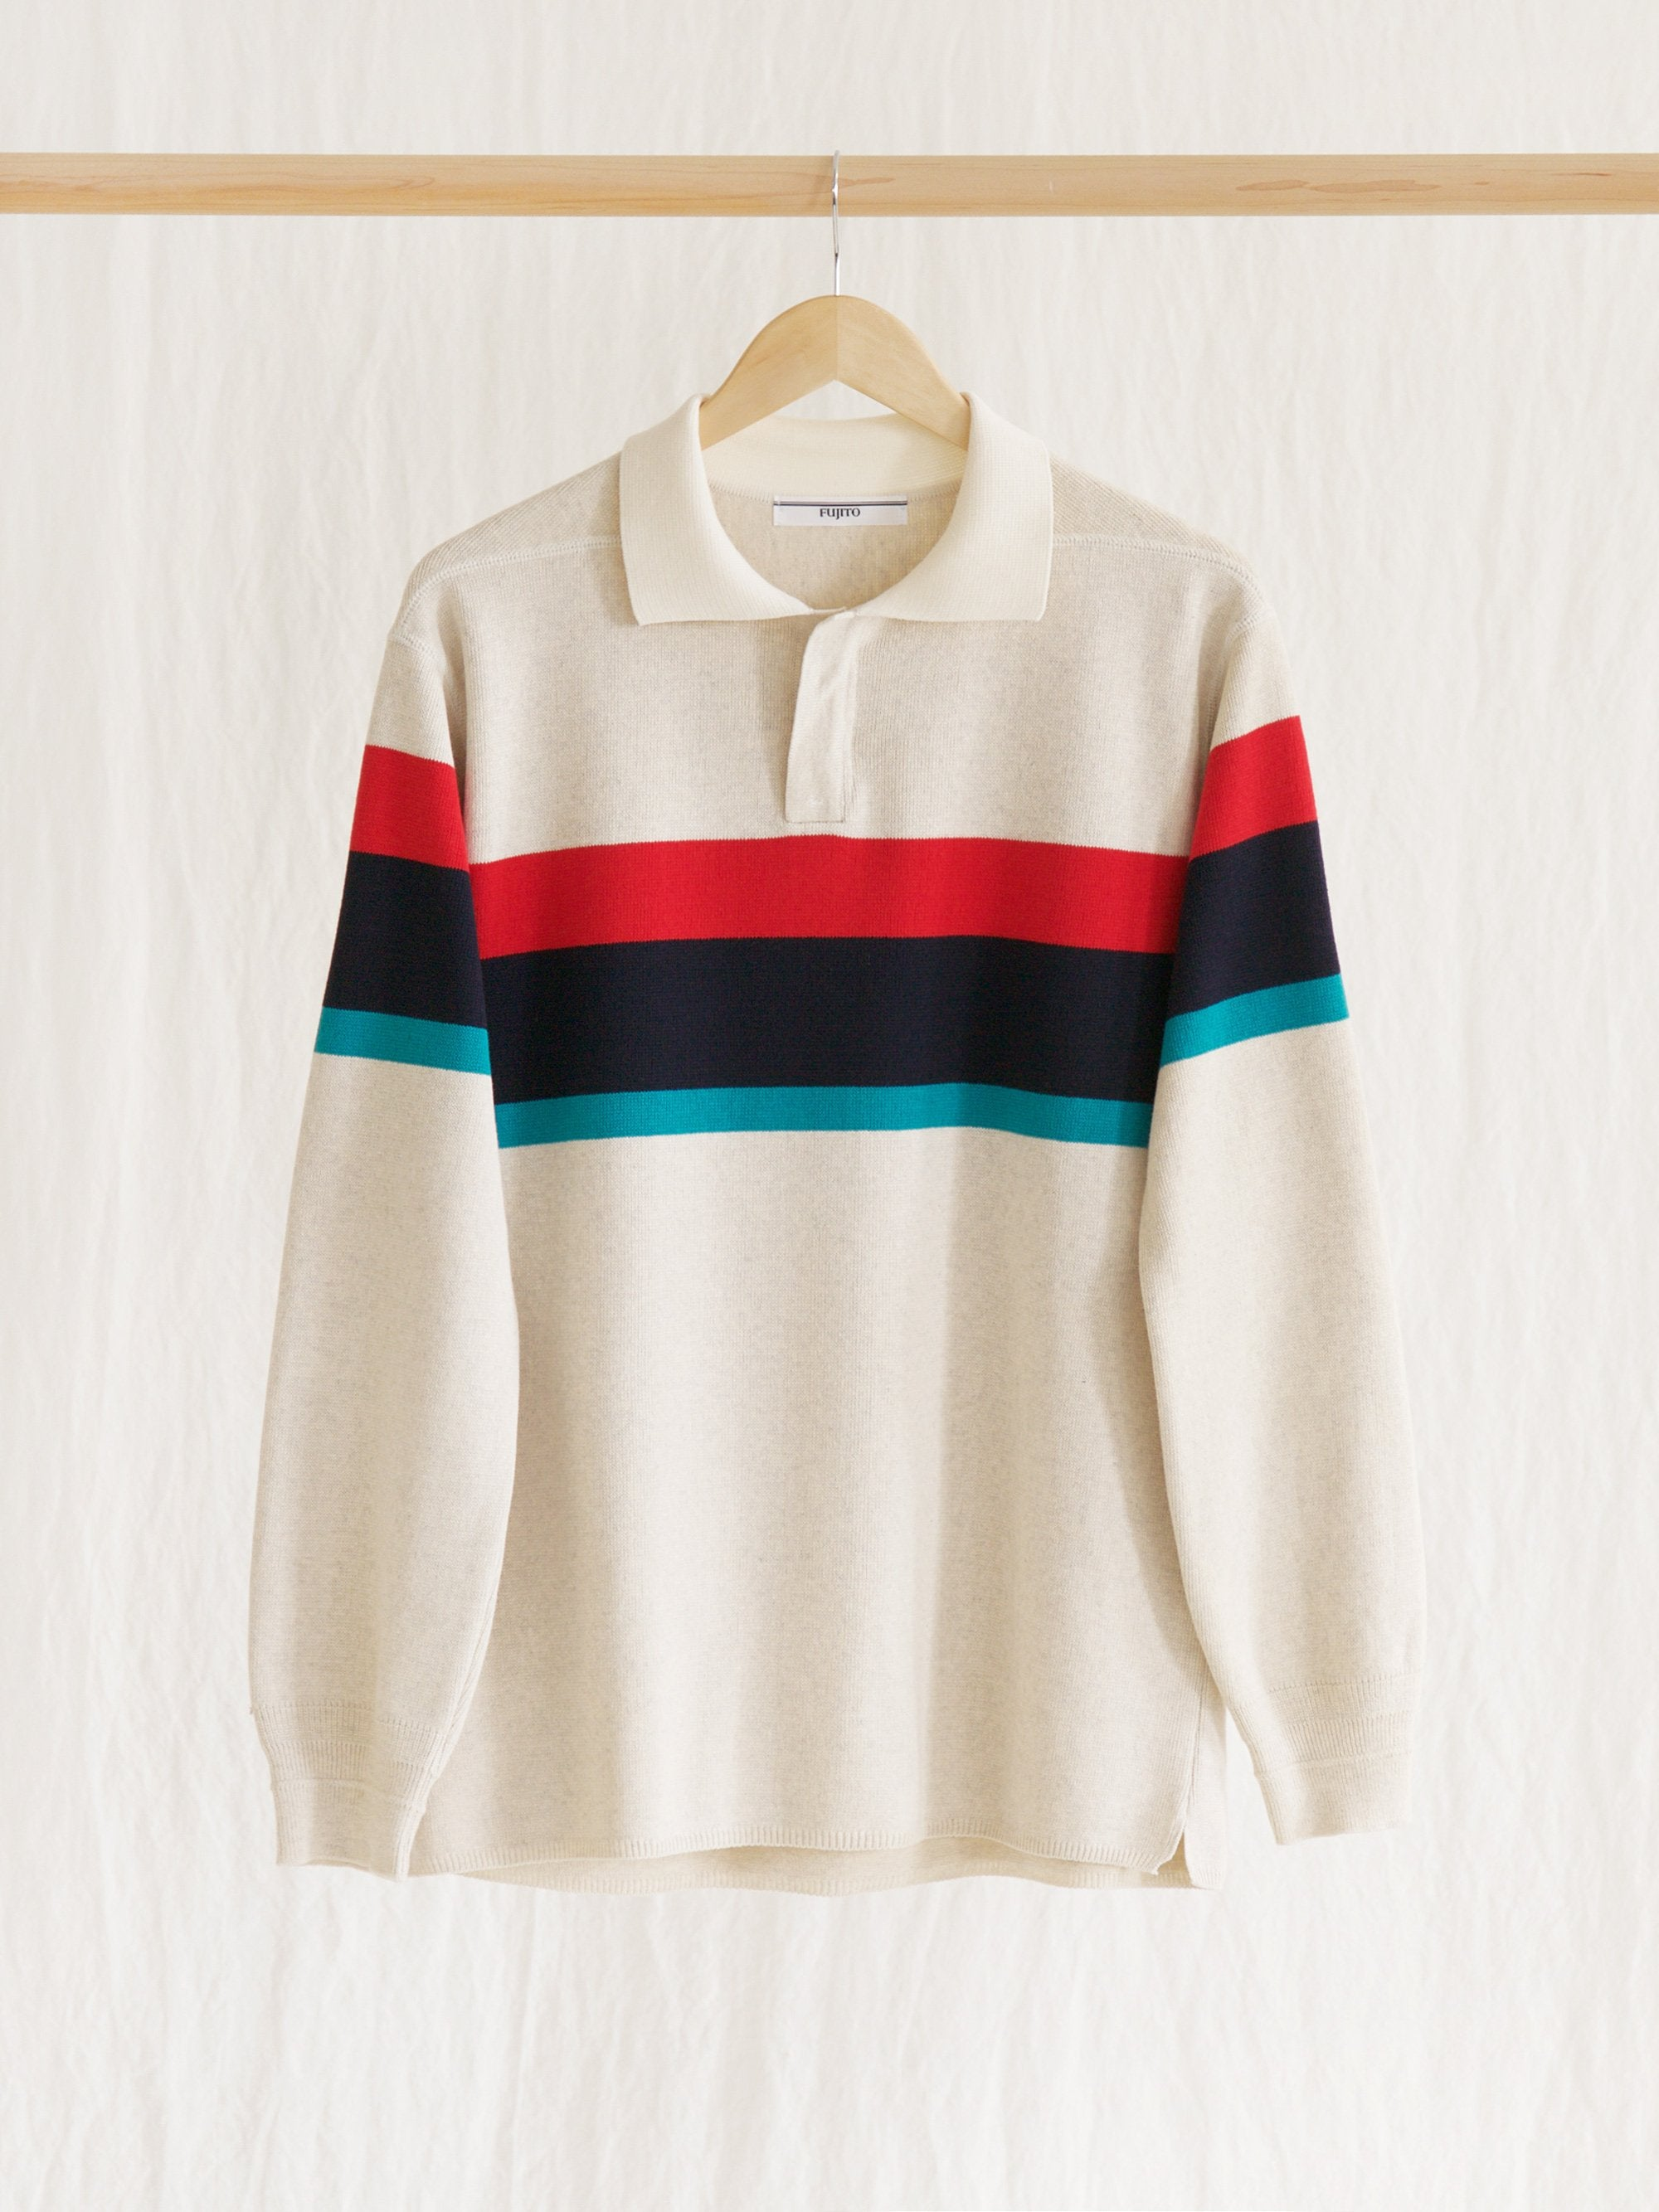 Namu Shop - Fujito Rugger Sweater - Border